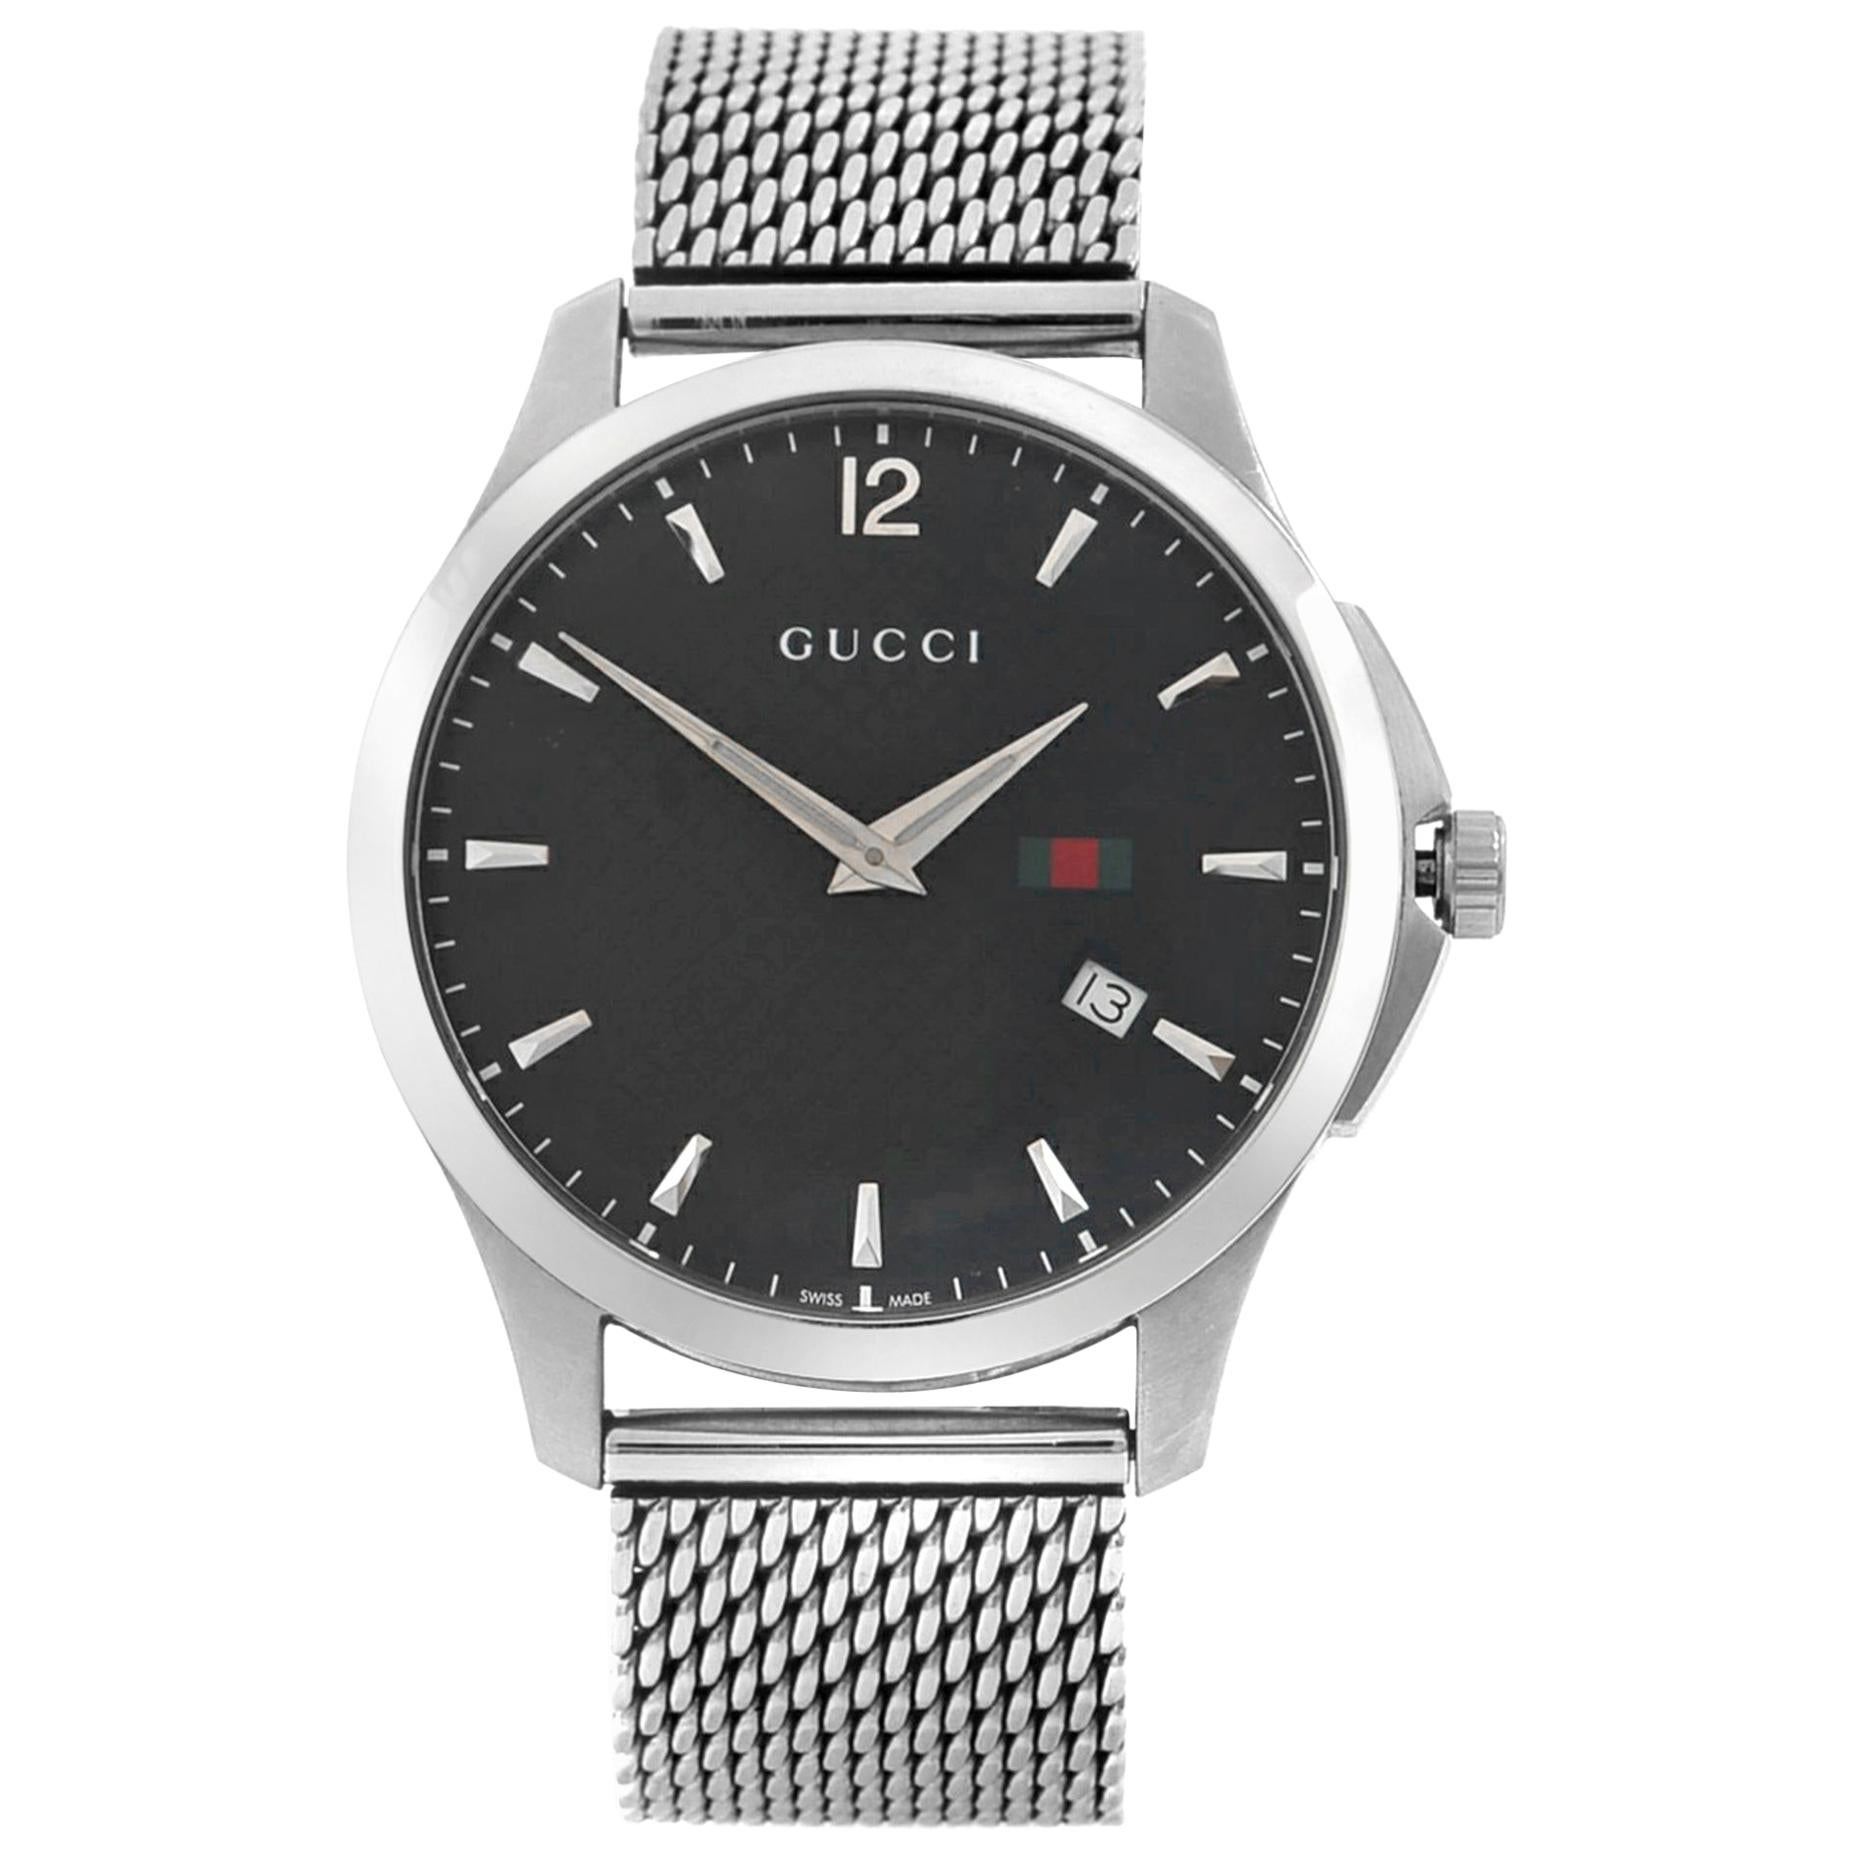 9e9ec8ace Gucci Jewelry & Watches: Bracelets, Necklaces & More - For Sale at 1stdibs